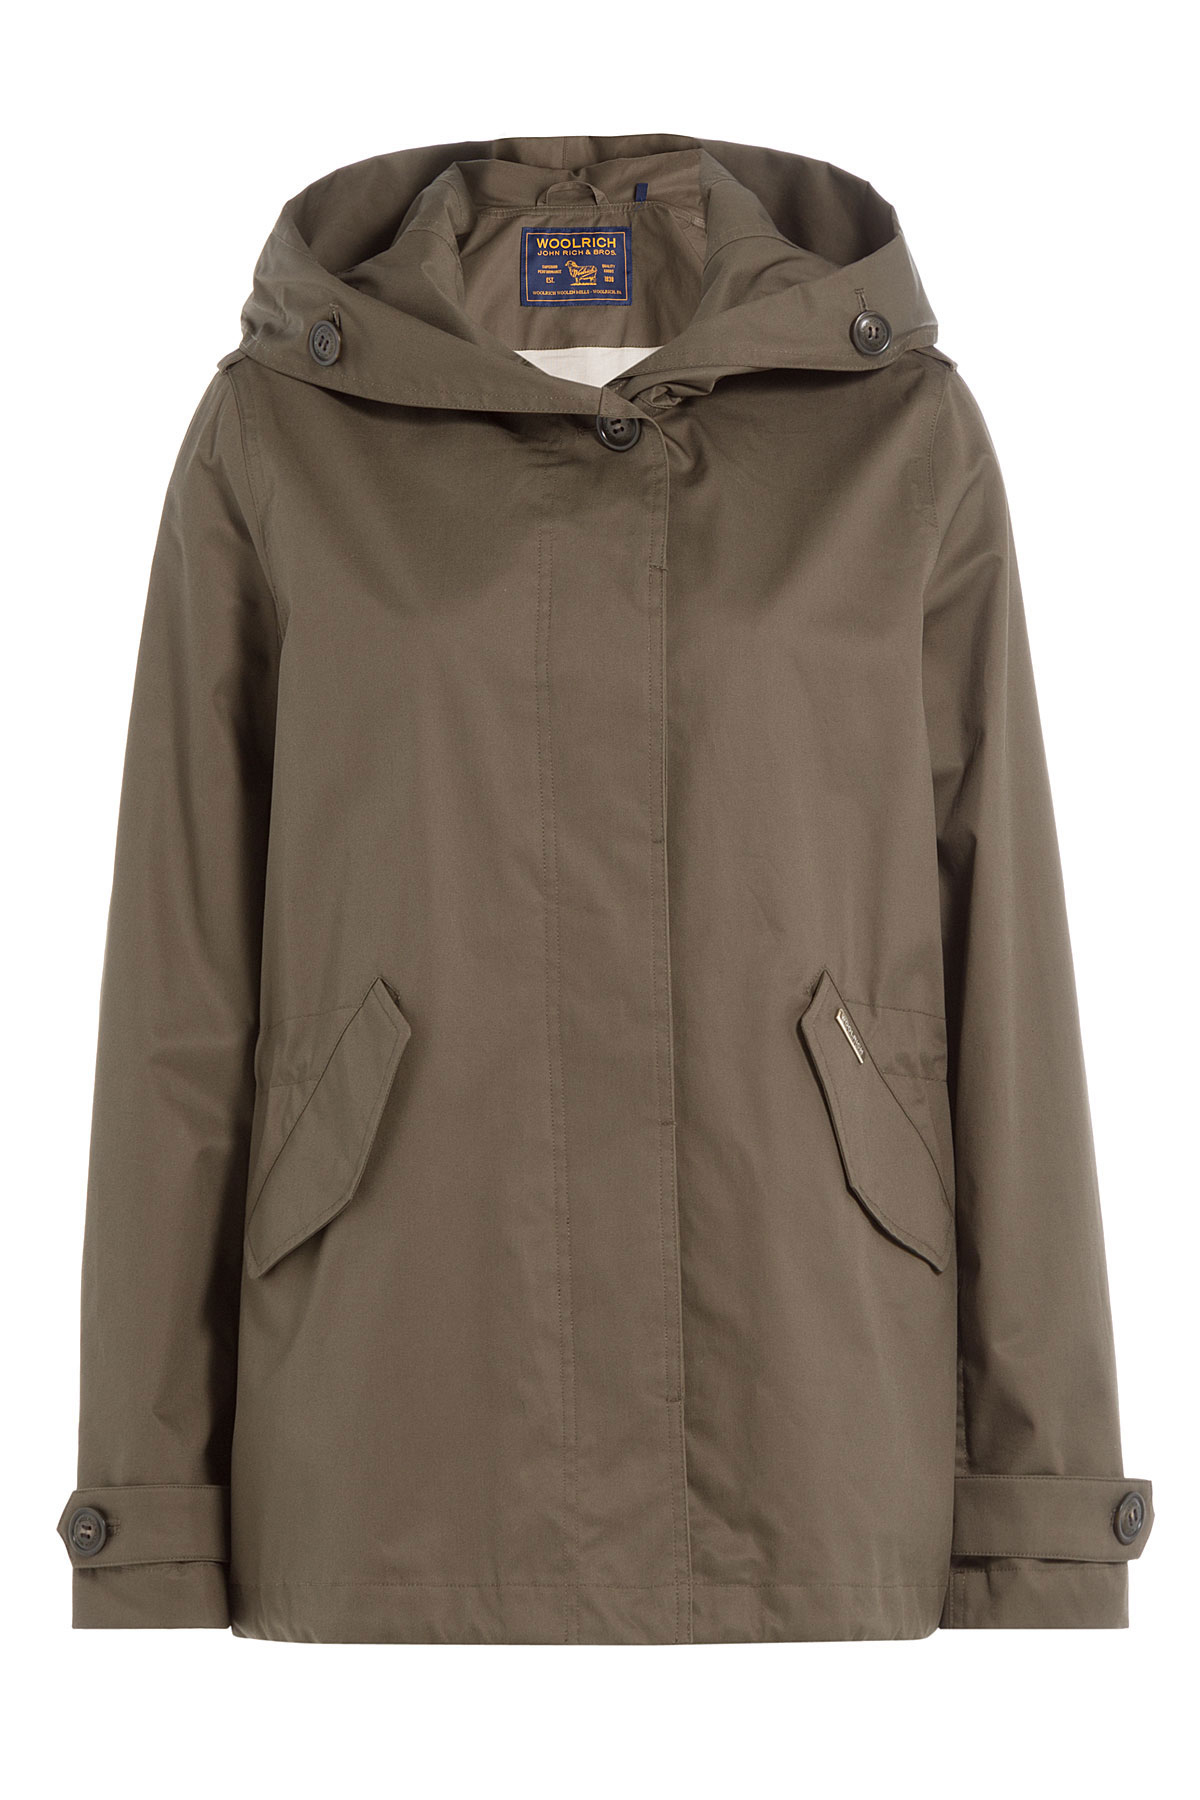 Woolrich Prescott Short Cotton Parka - Green in Green | Lyst